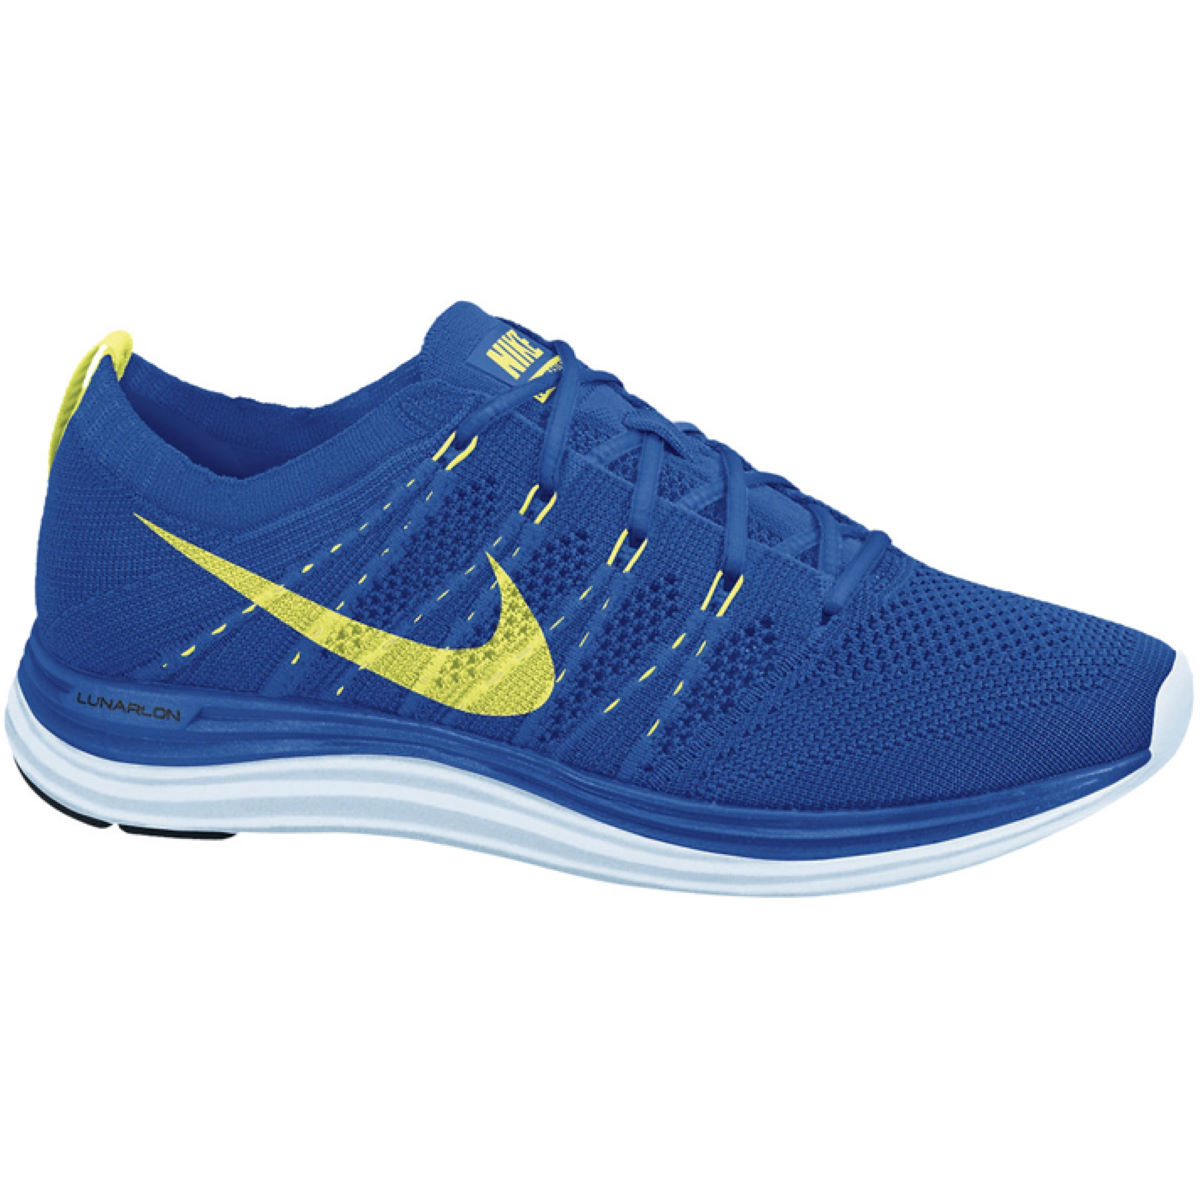 Nike Flyknit Lunar1 Shoes - FA13